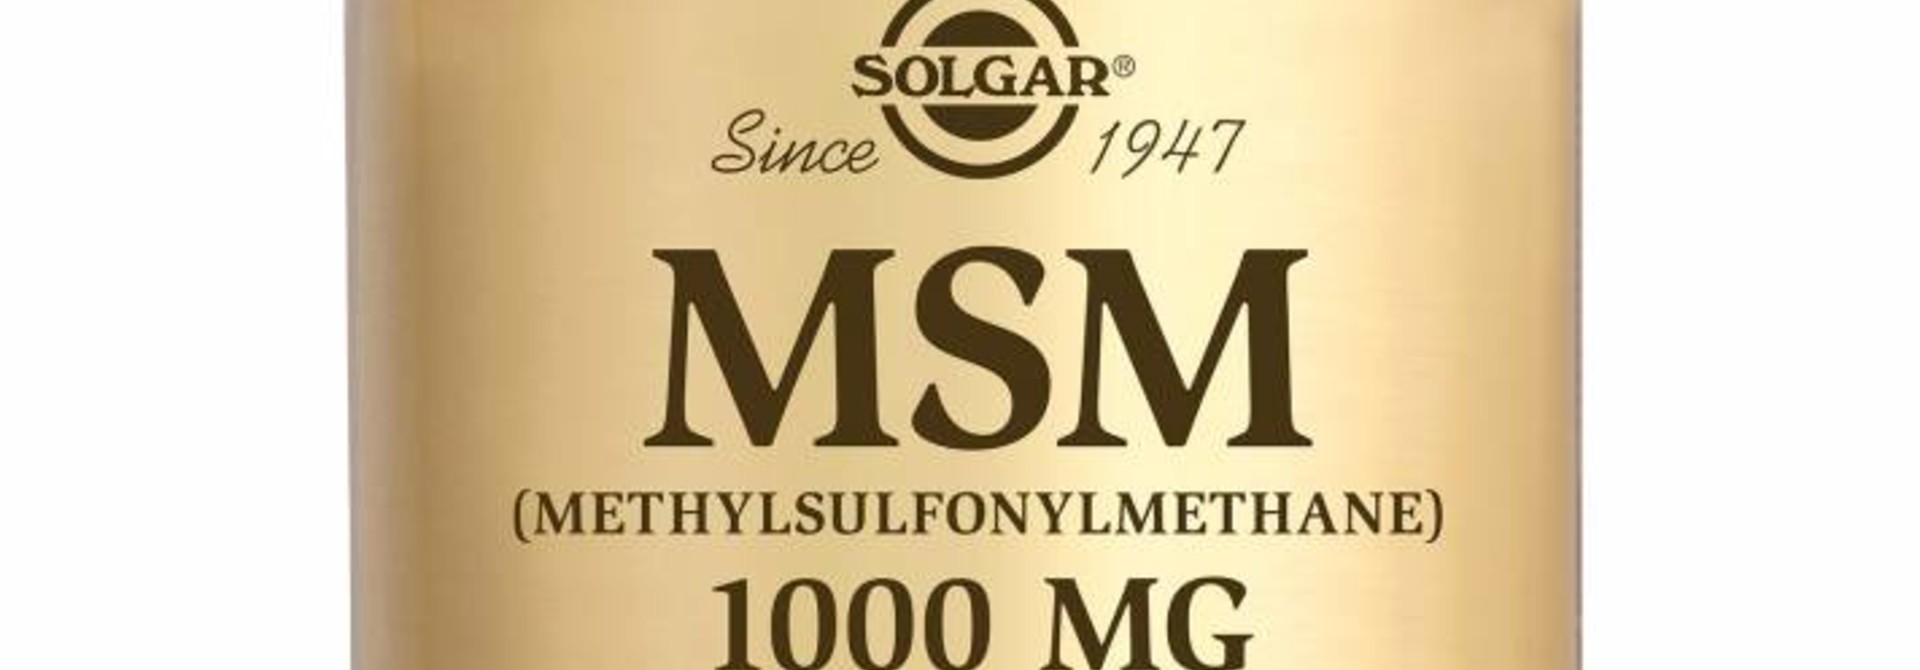 MSM 1000 mg 120 tabletten